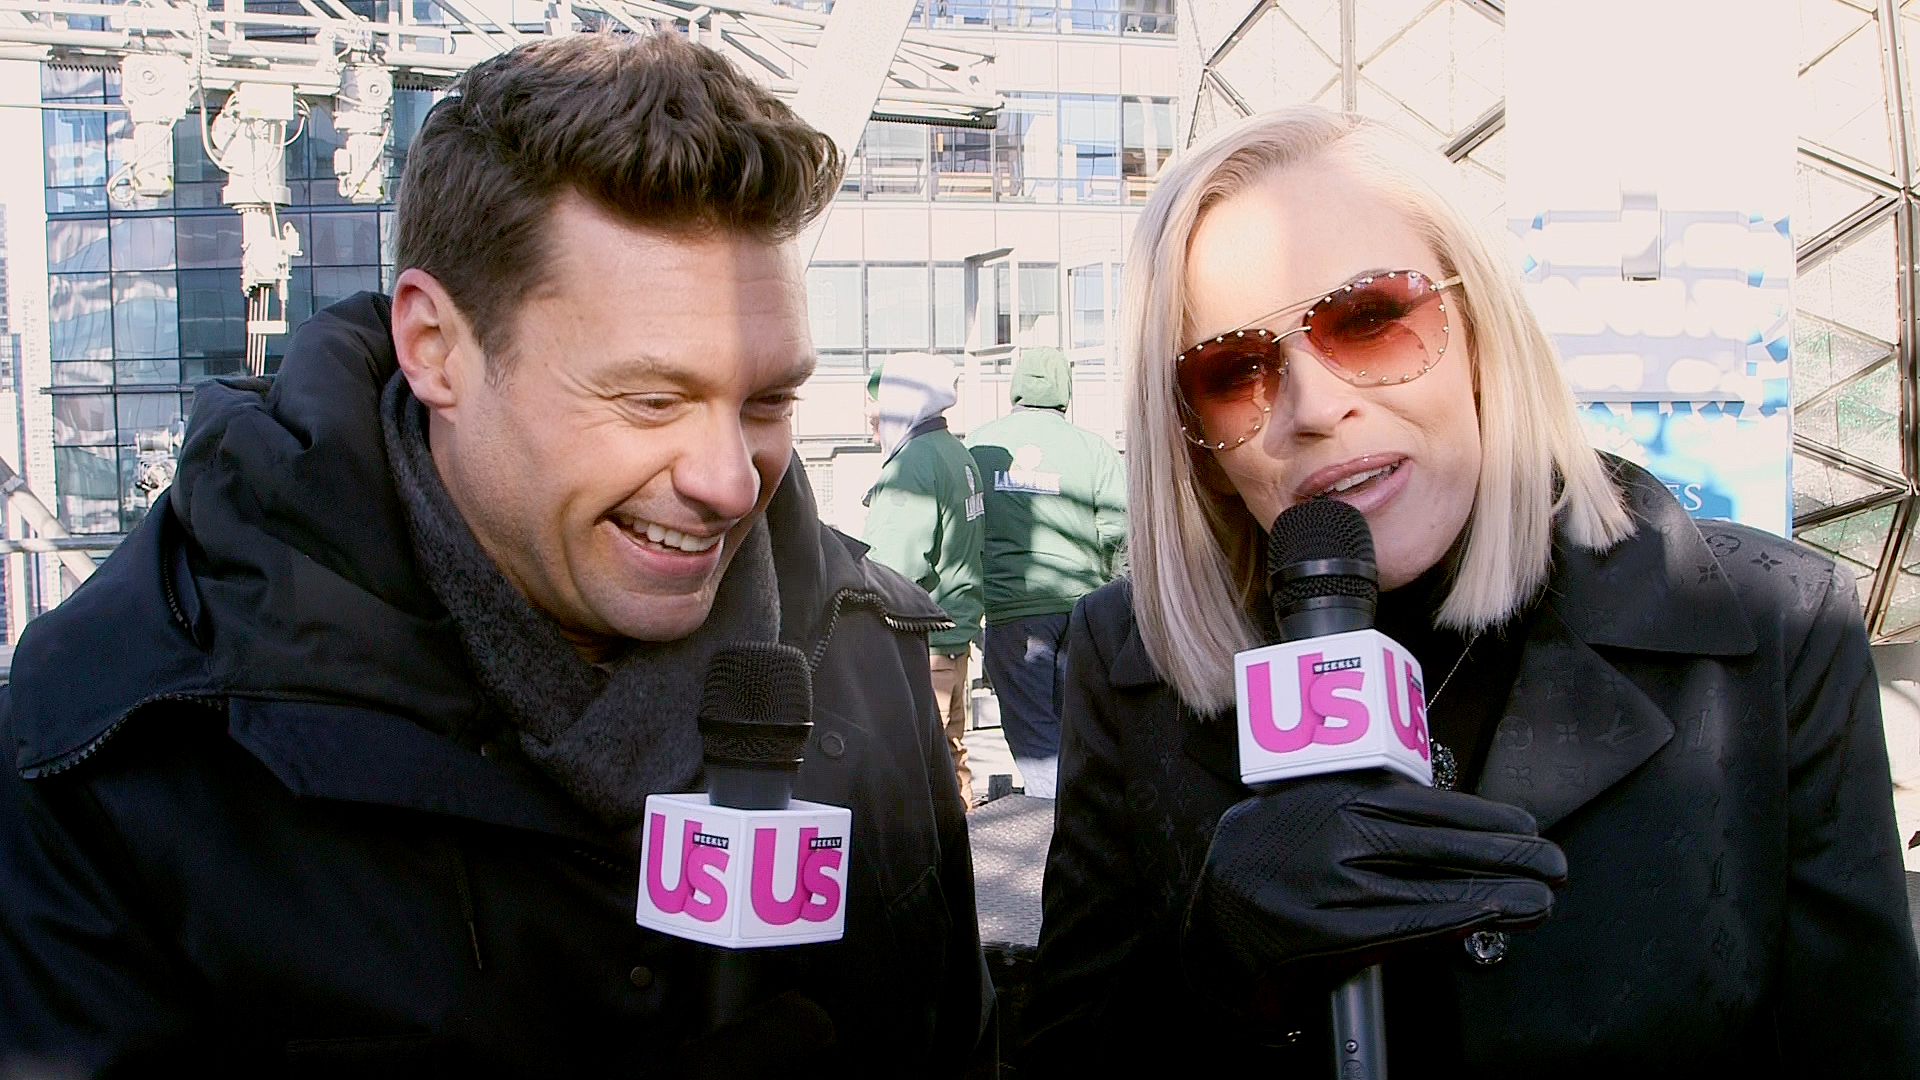 Seacrest says he's sure Carey won't miss NYE gig rehearsal